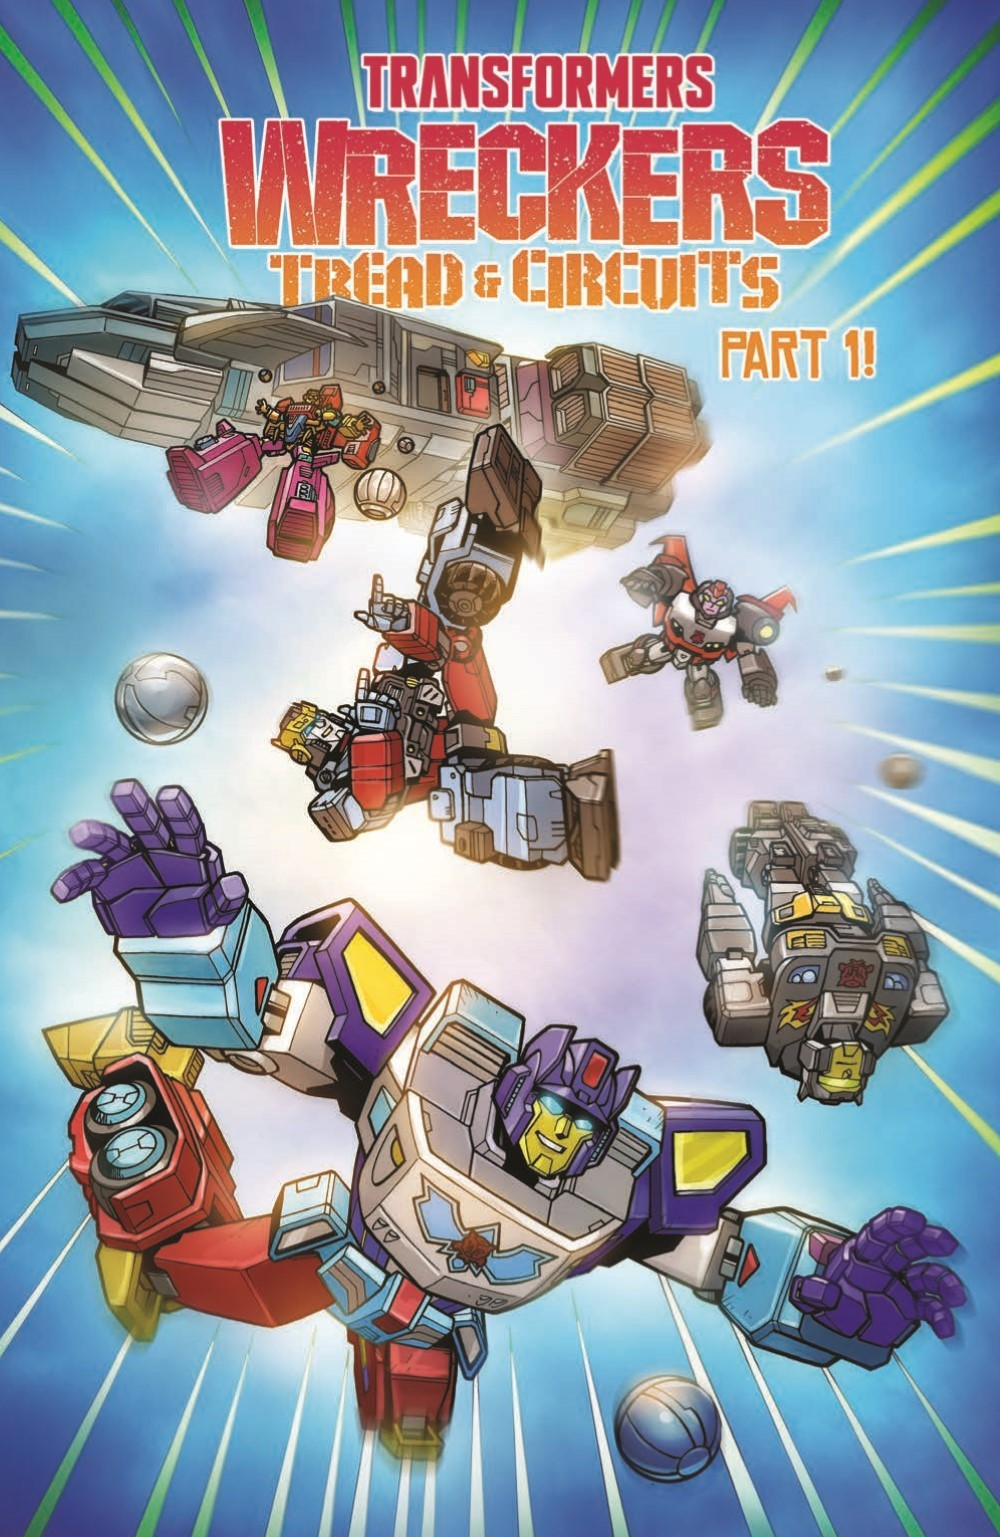 TFWreckers01-pr-4 ComicList Previews: TRANSFORMERS WRECKERS TREAD AND CIRCUITS #1 (OF 4)